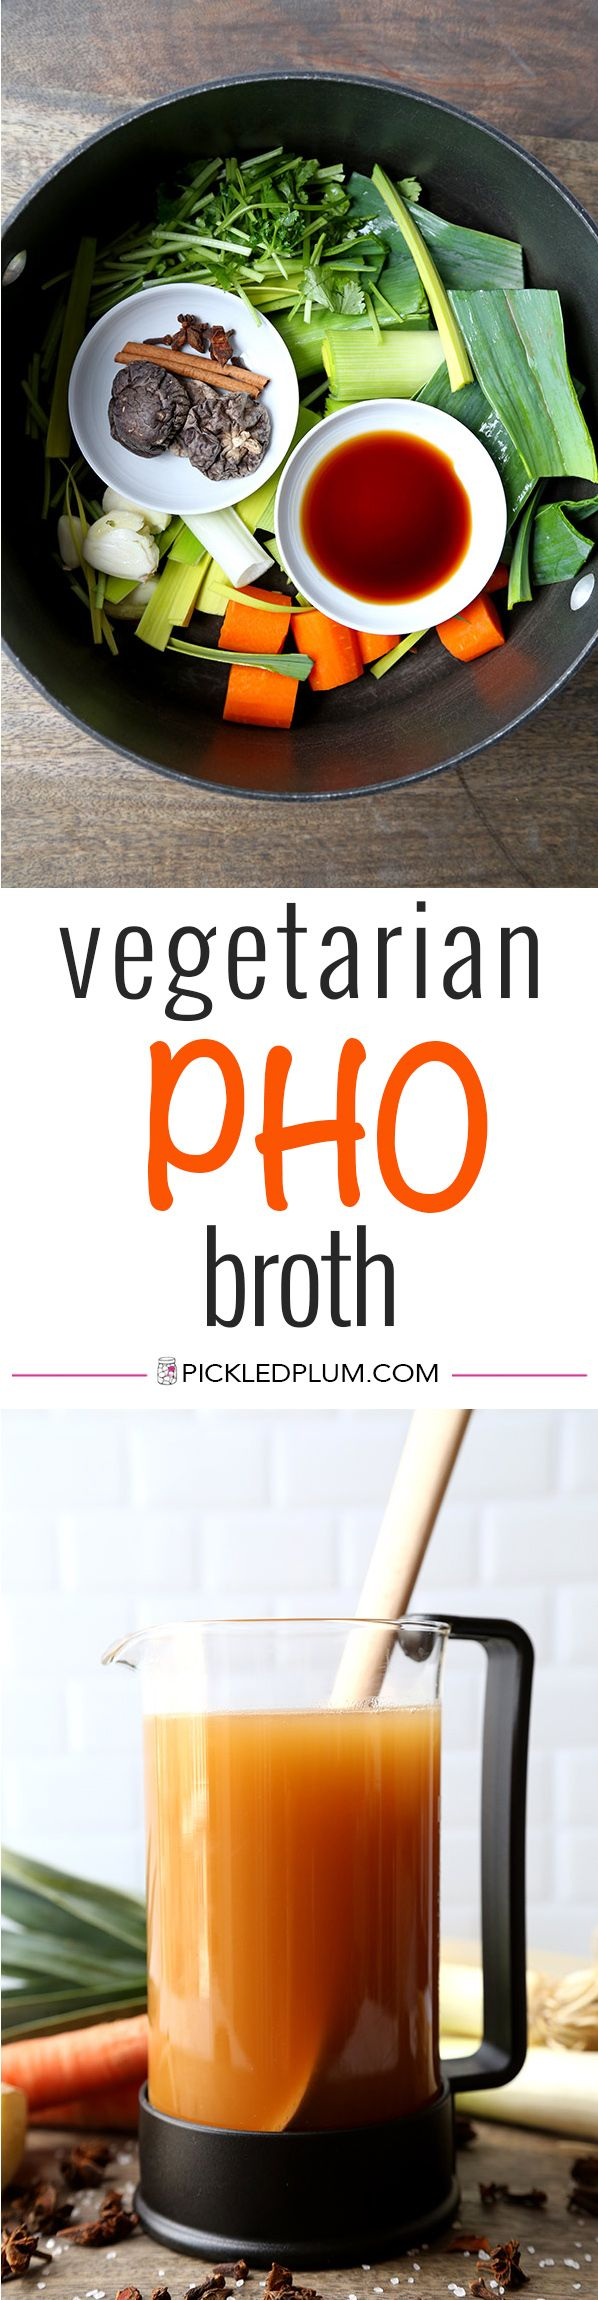 Vegetarian Pho Broth - This is a mild yet fragrant vegetable pho broth recipe. Who says you need meat to make everything better? This vegetable pho broth proves that veggies done well can taste spectacular! Recipe, vegan, broth, soup, noodle soup   pickledplum.com